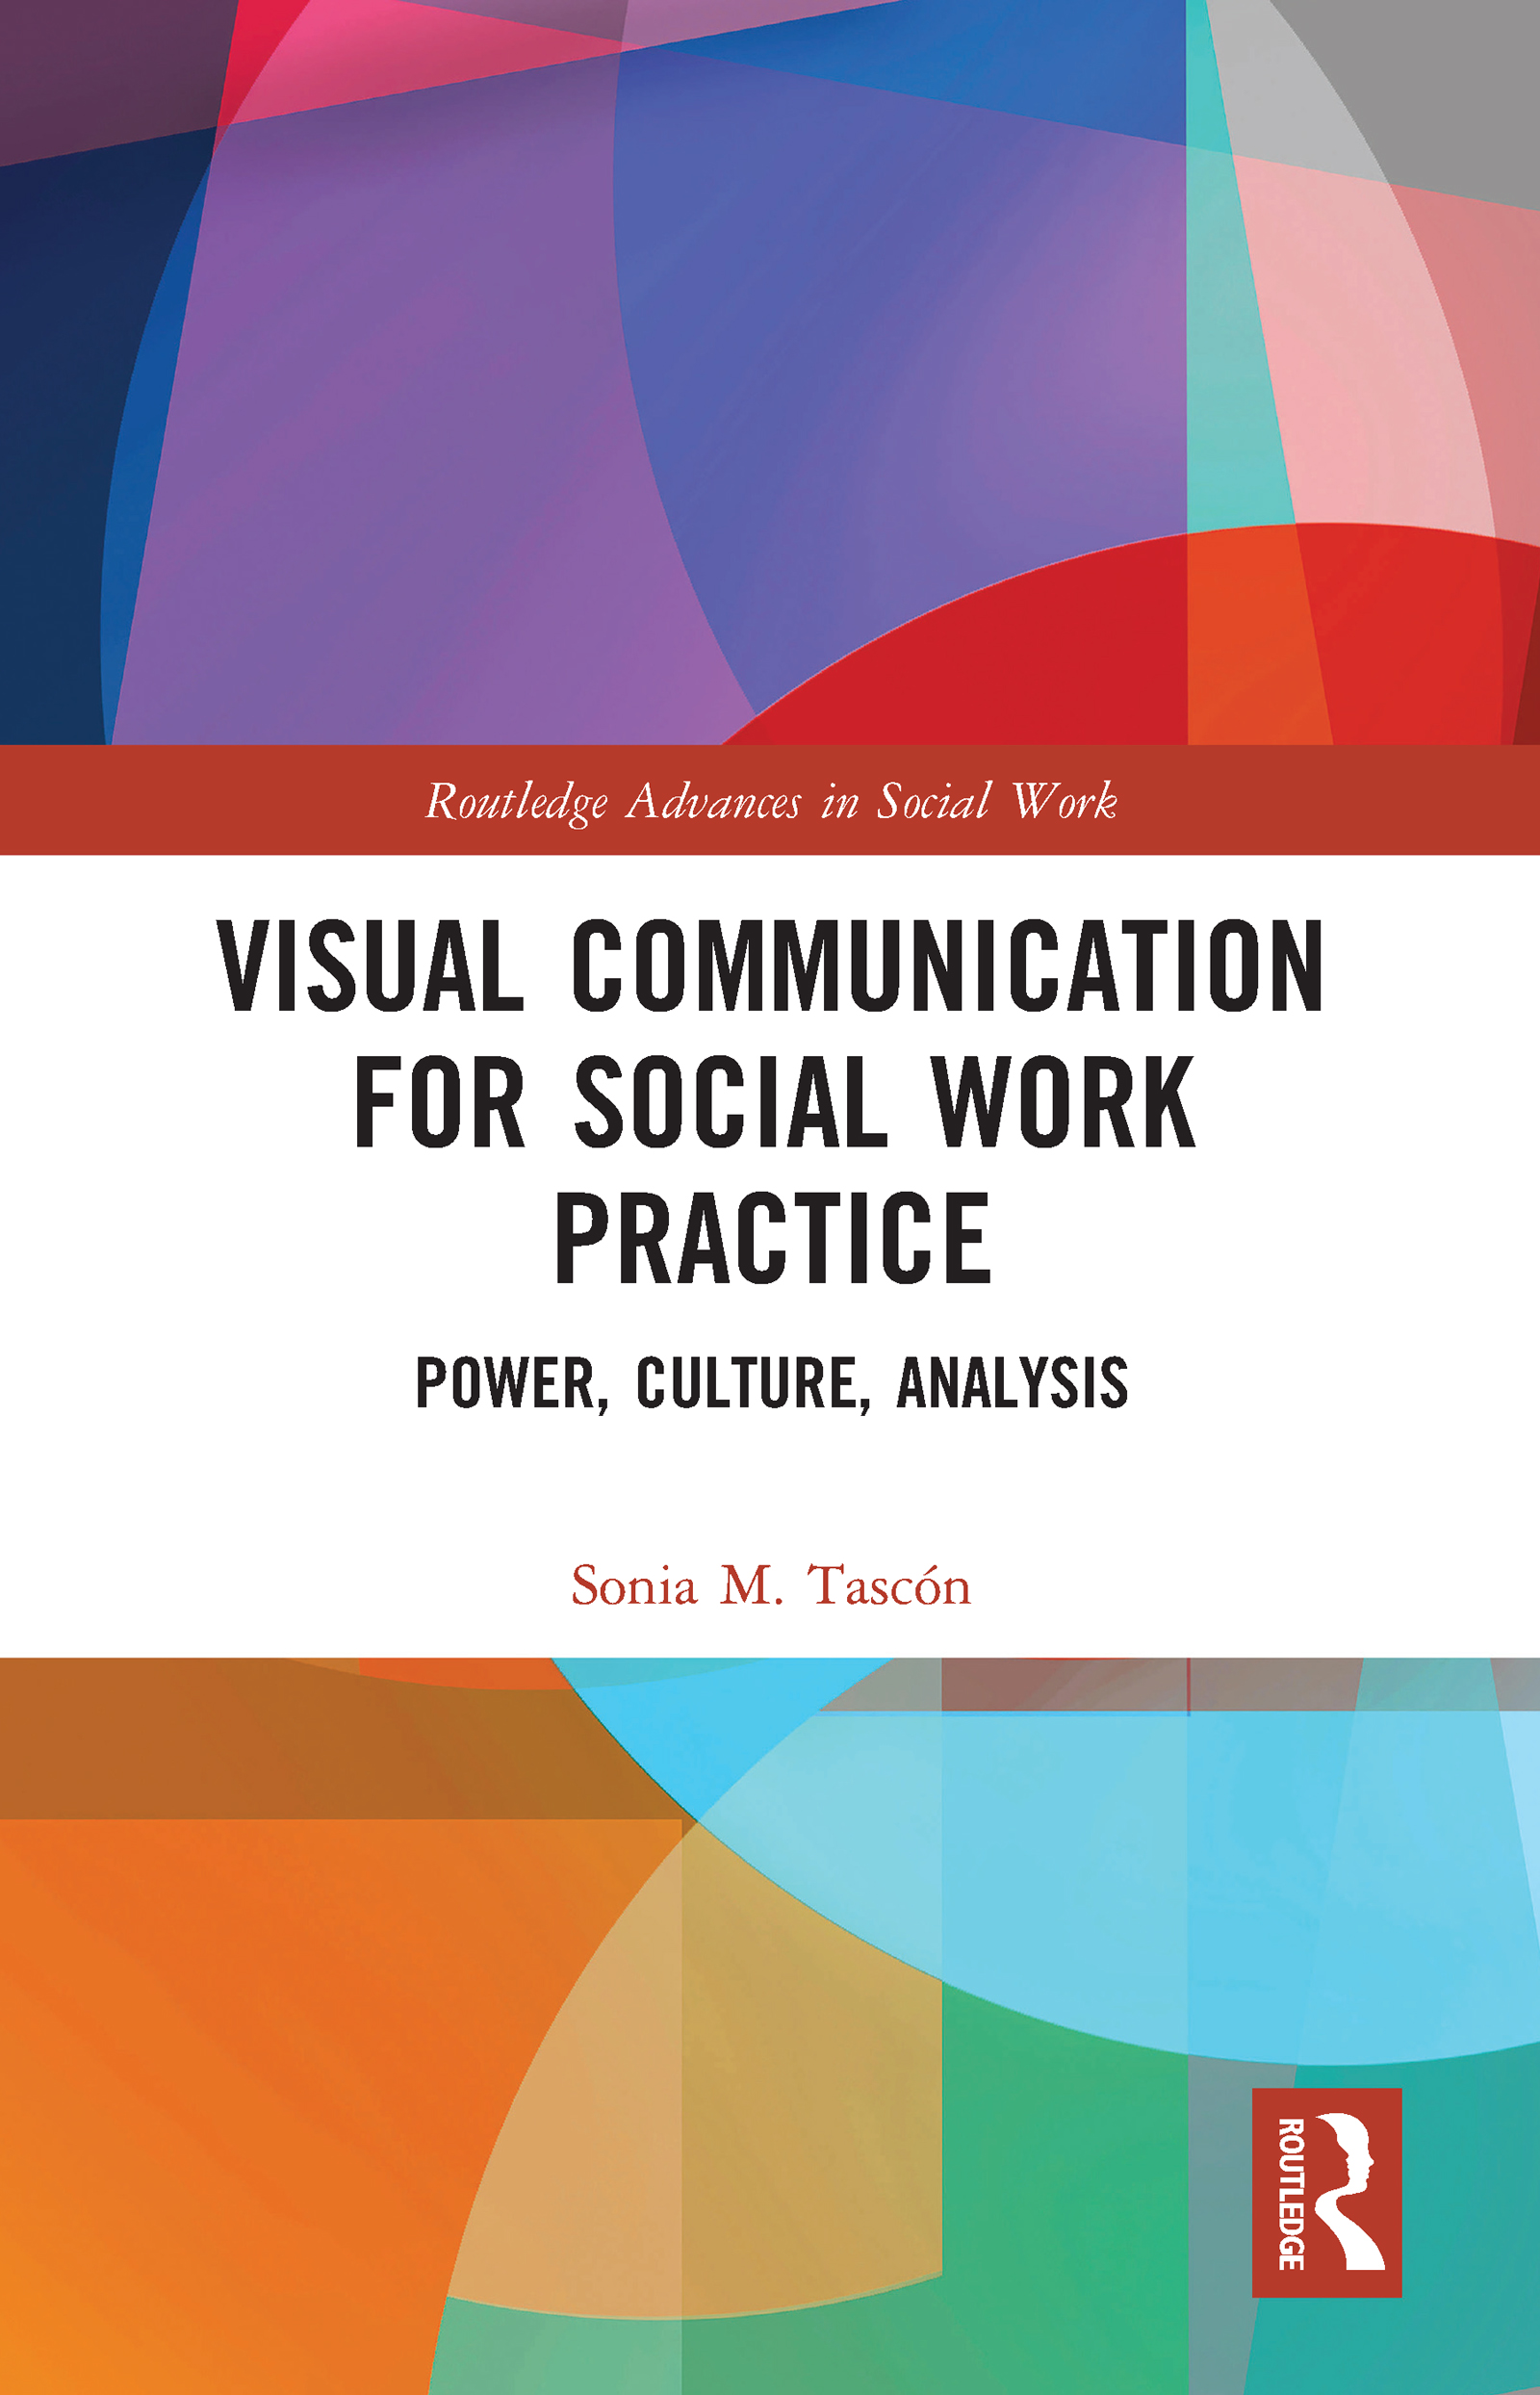 Visual Communication for Social Work Practice